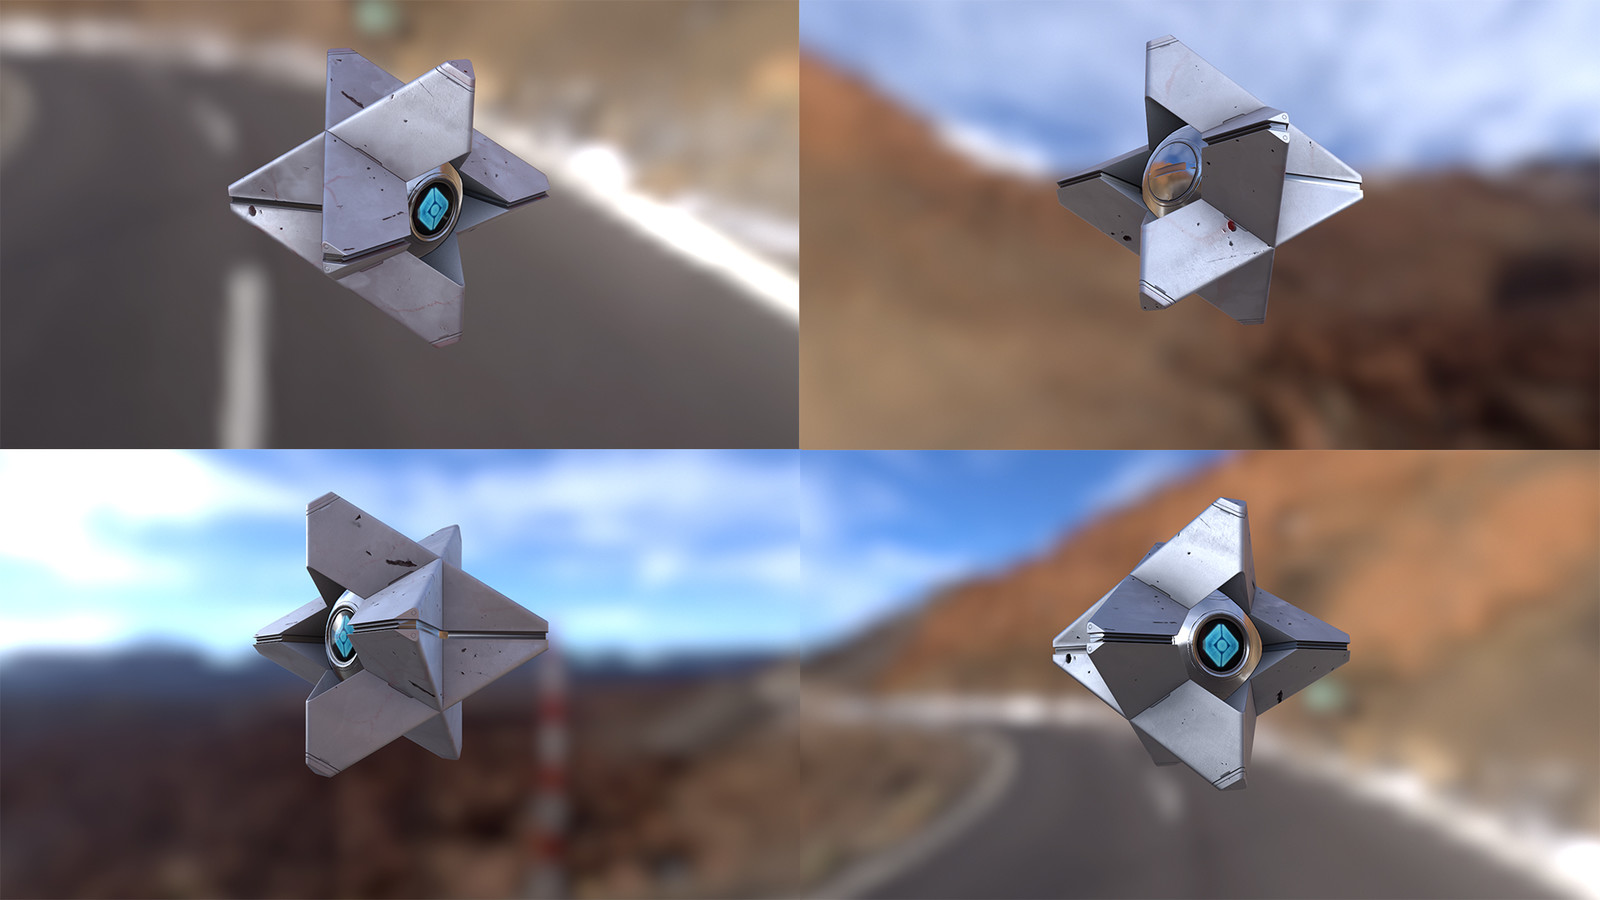 """Fanart """"Ghost"""" from the Game Destiny, i just love this model design! modelled in 3ds max and rendered in Marmoset.  hope you like it!"""